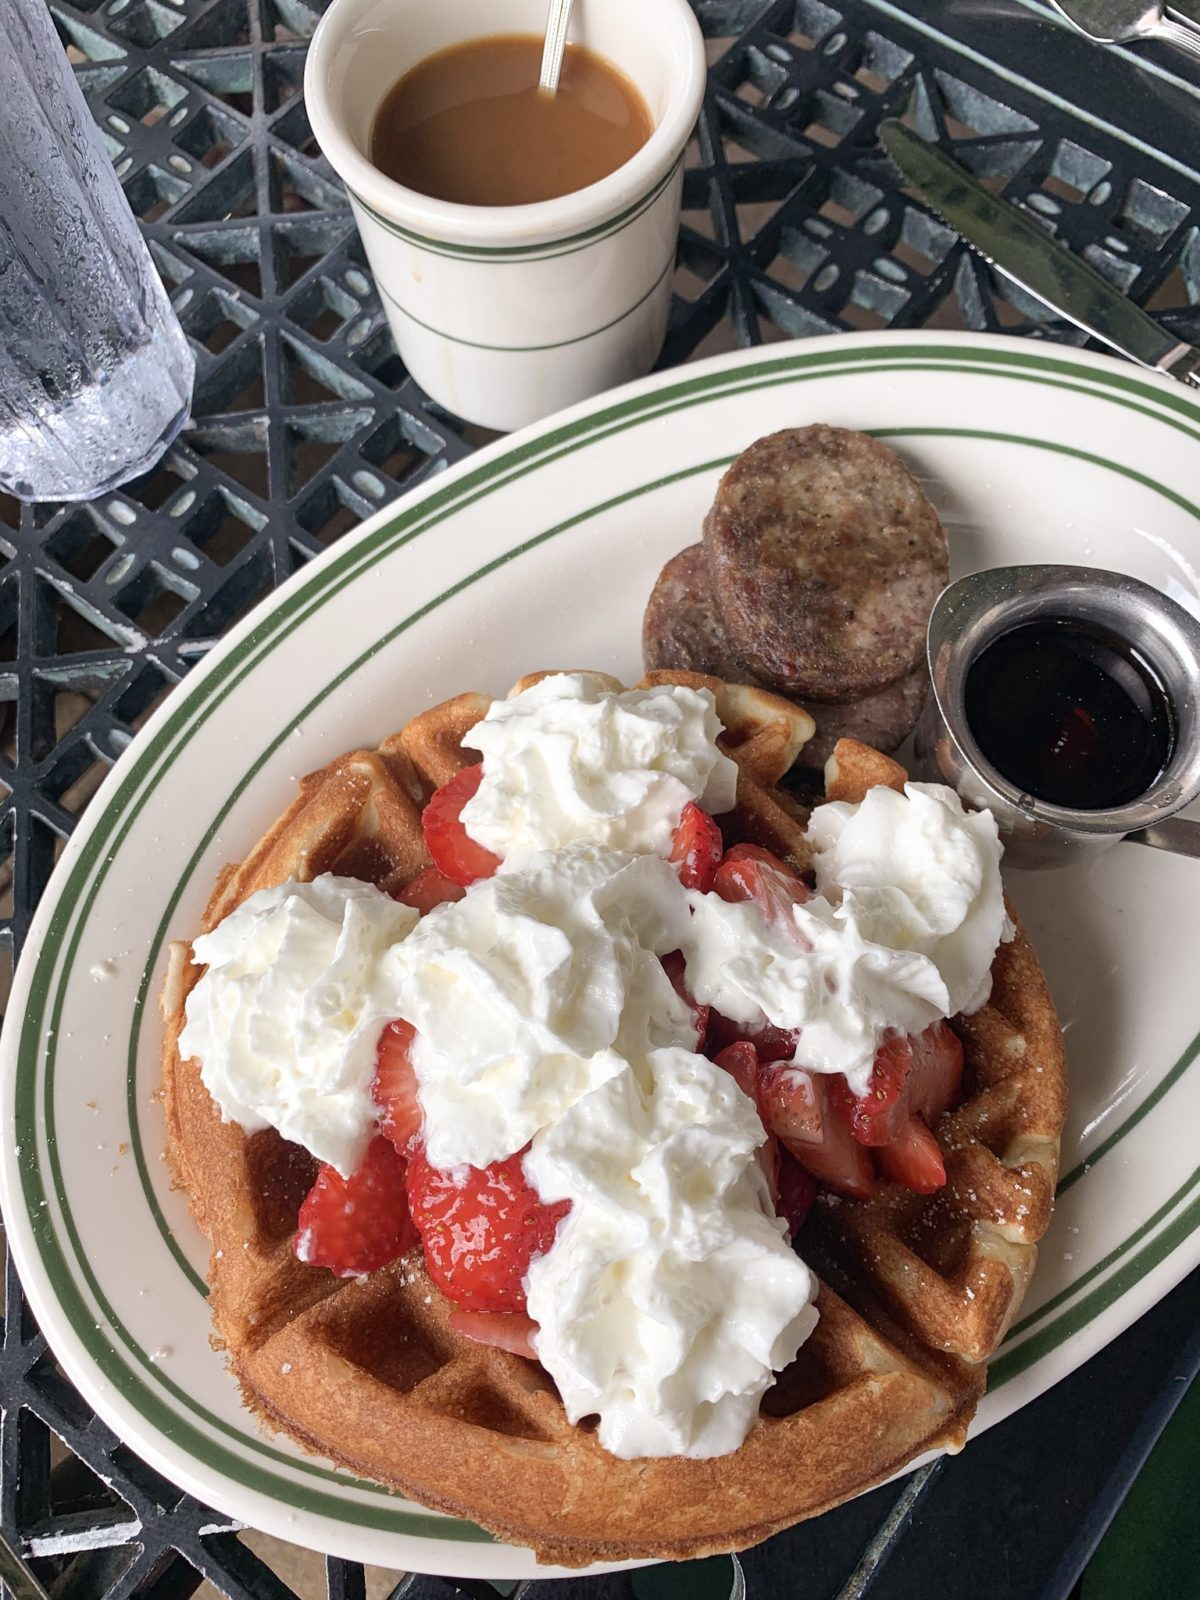 48 hours in San Antonio - waffles and coffee